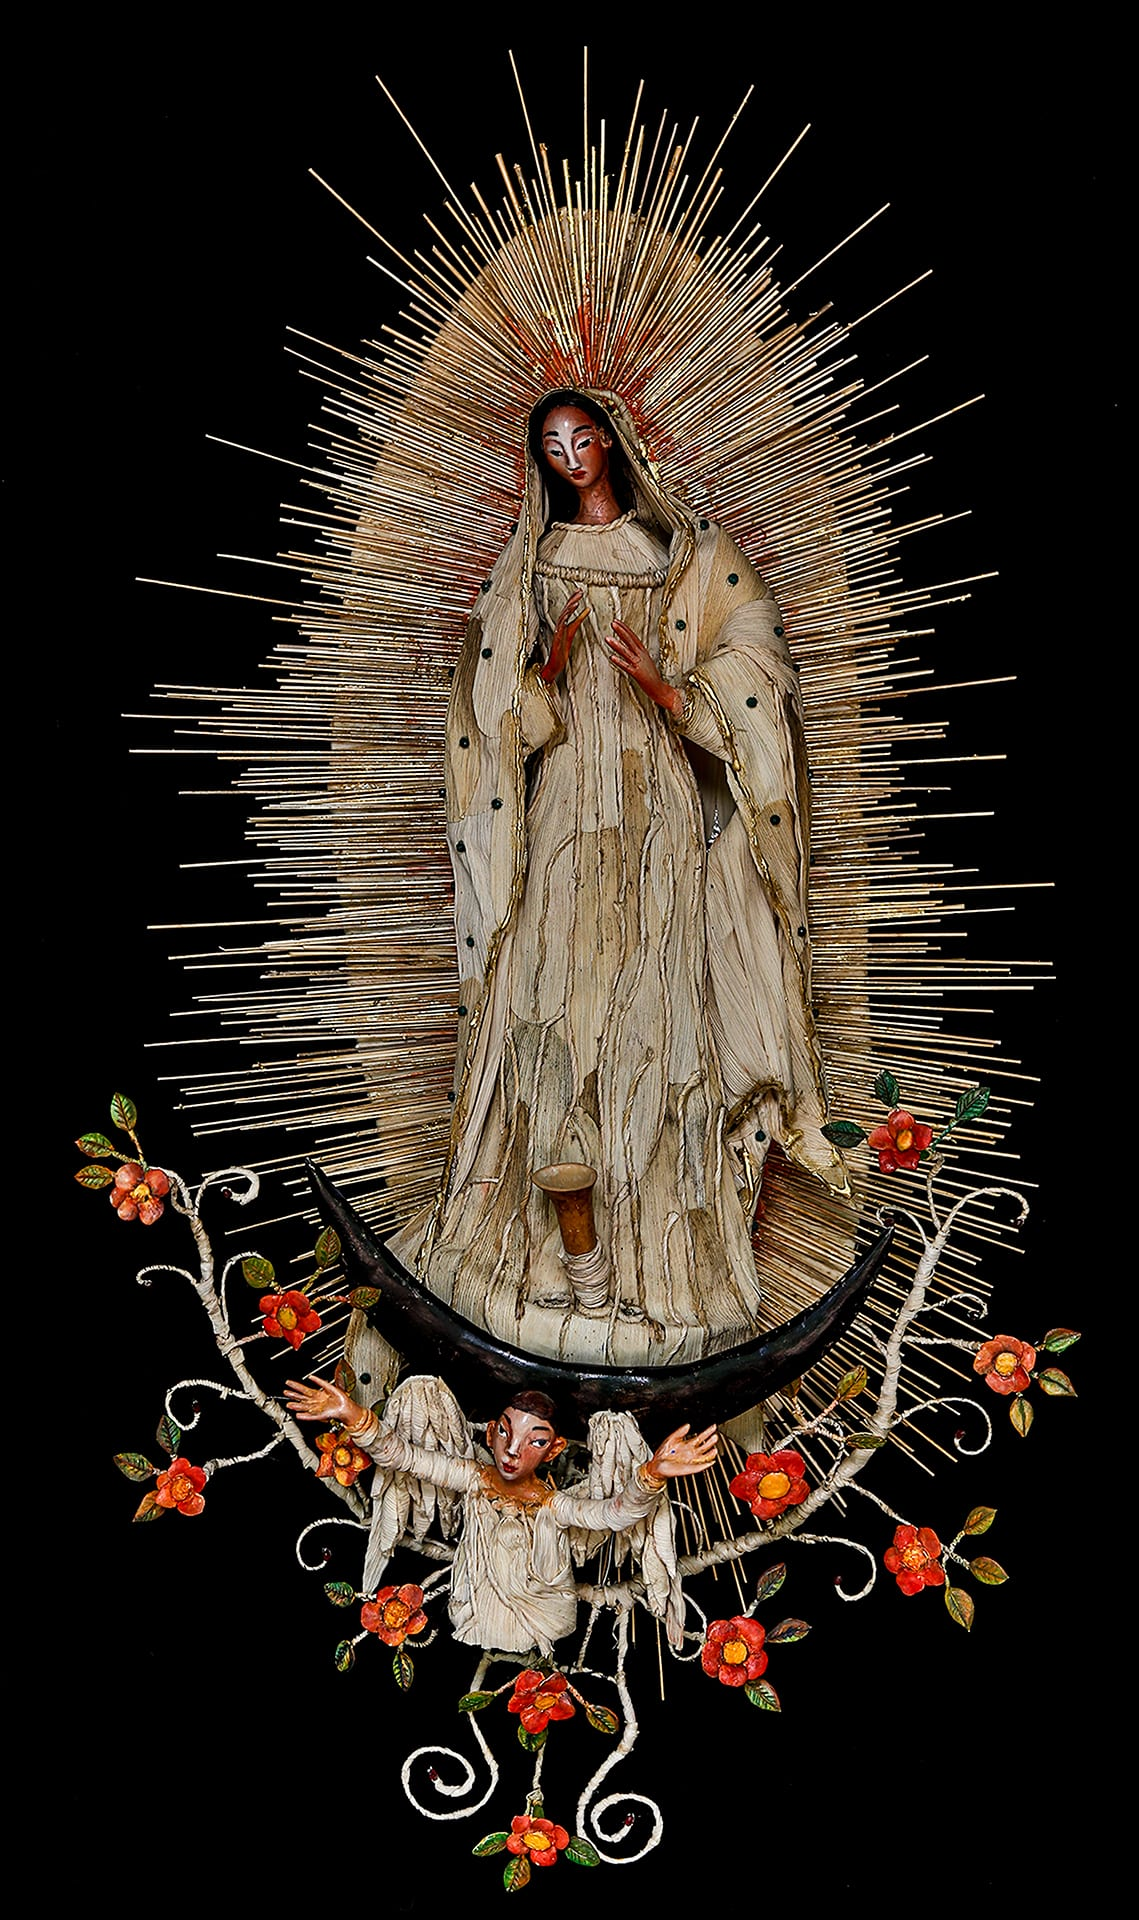 La Virgen de Guadalupe - 3D mixed media - 44